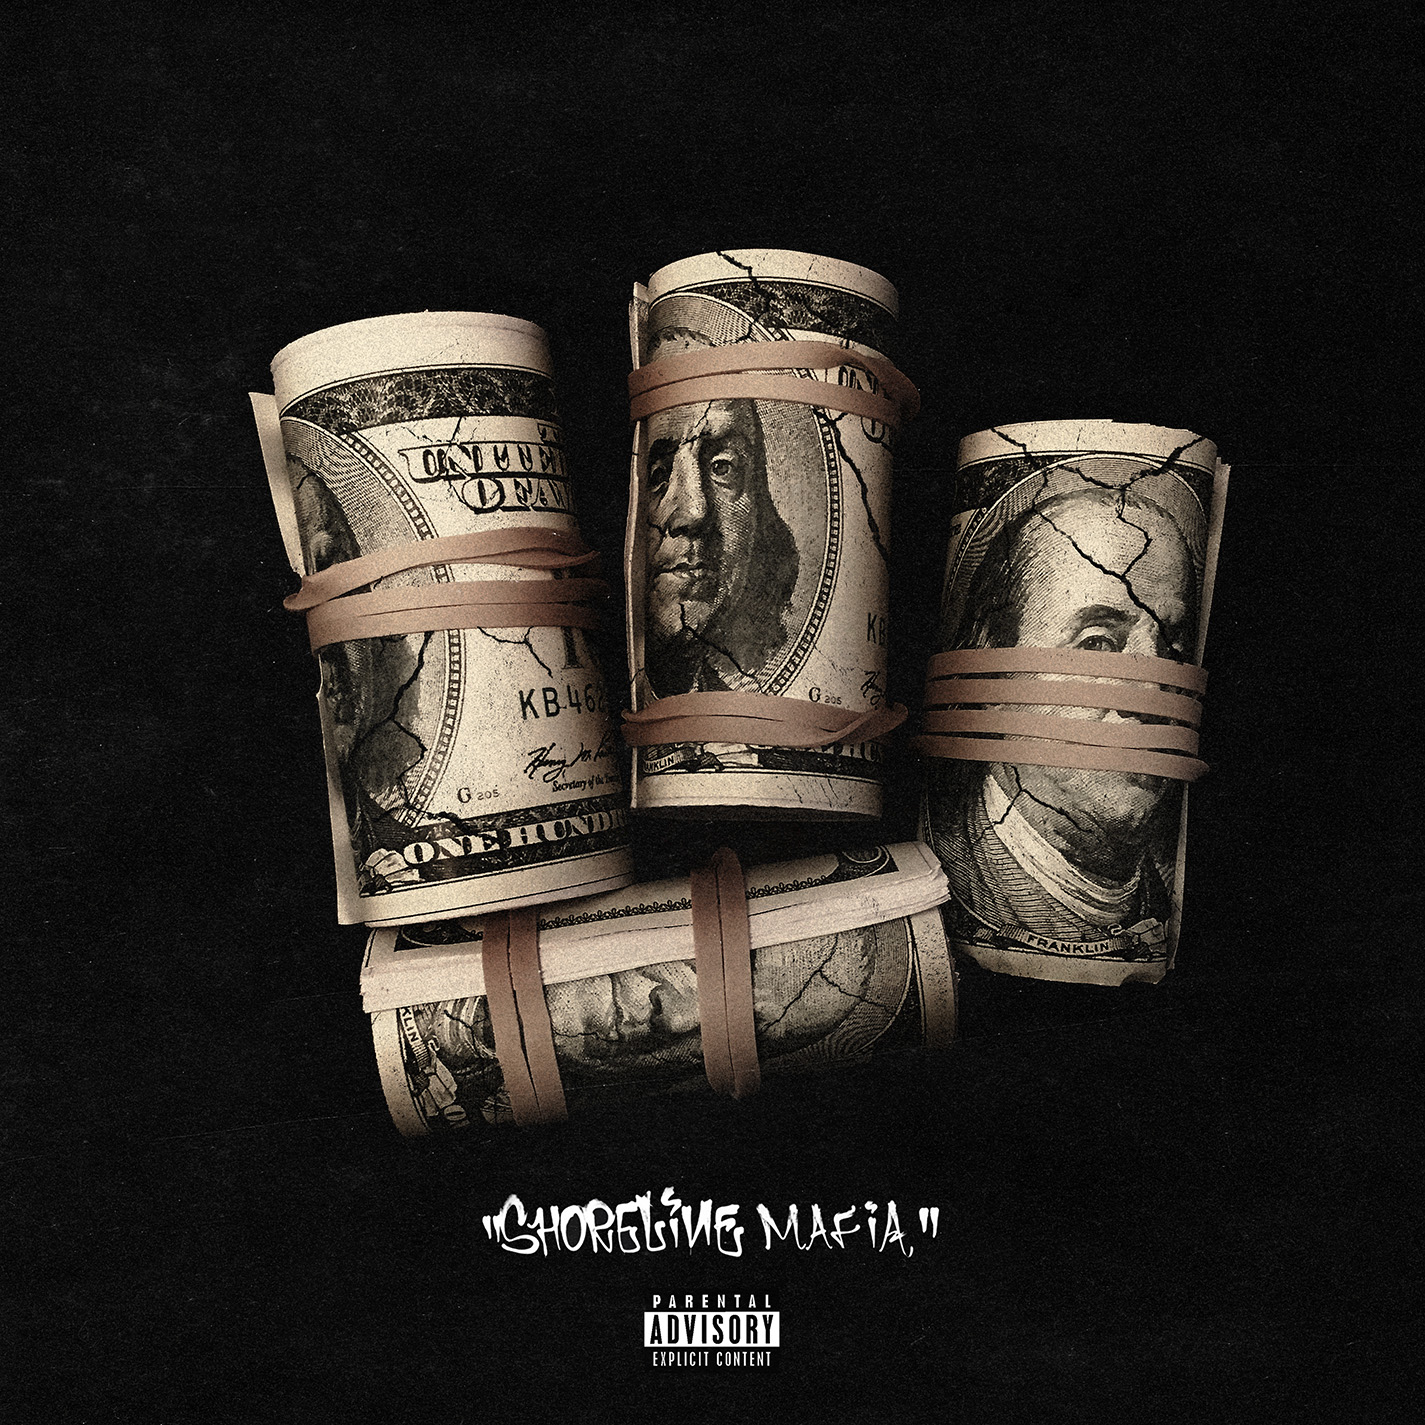 Shoreline Mafia - Banded Up single art